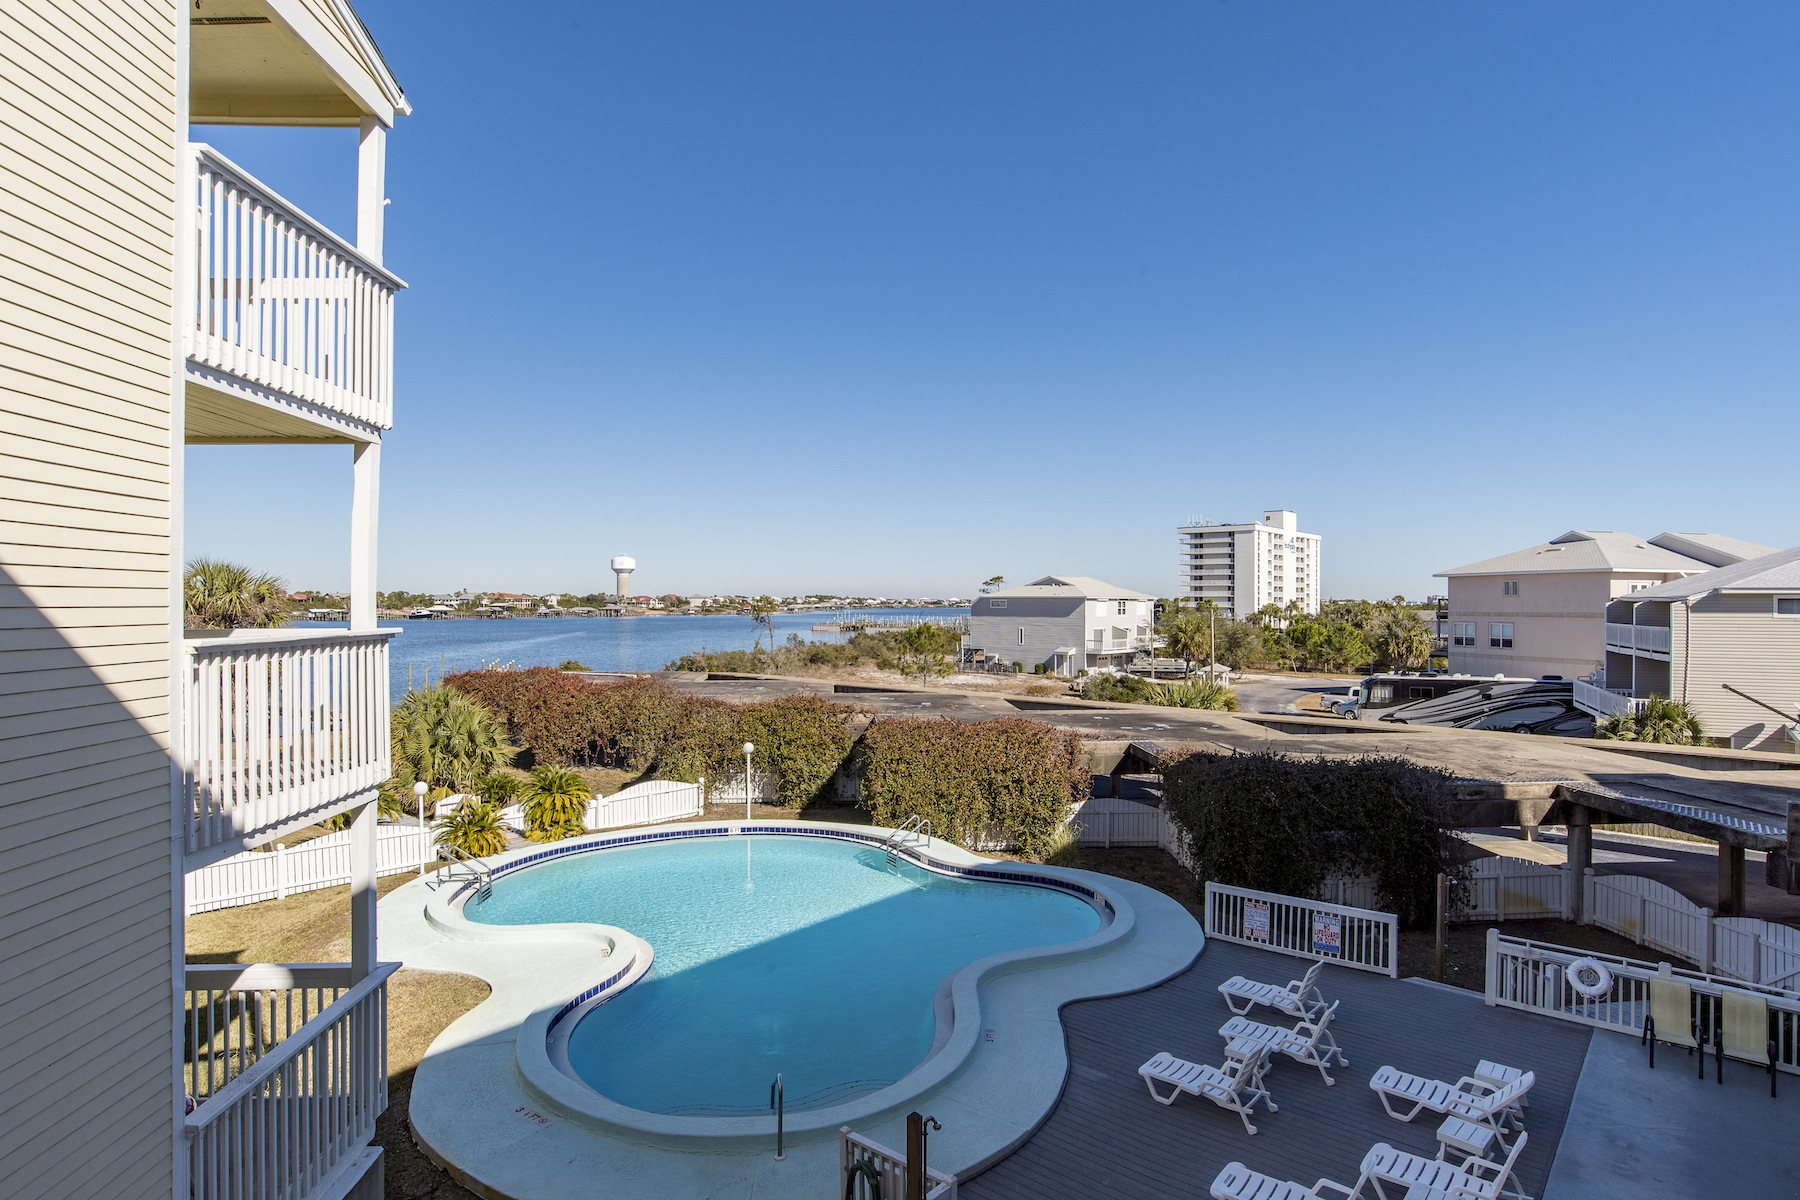 Condominium for Sale at Docks on Old River 16310 Perdido Key Drive, Pensacola, Florida, 32507 United States